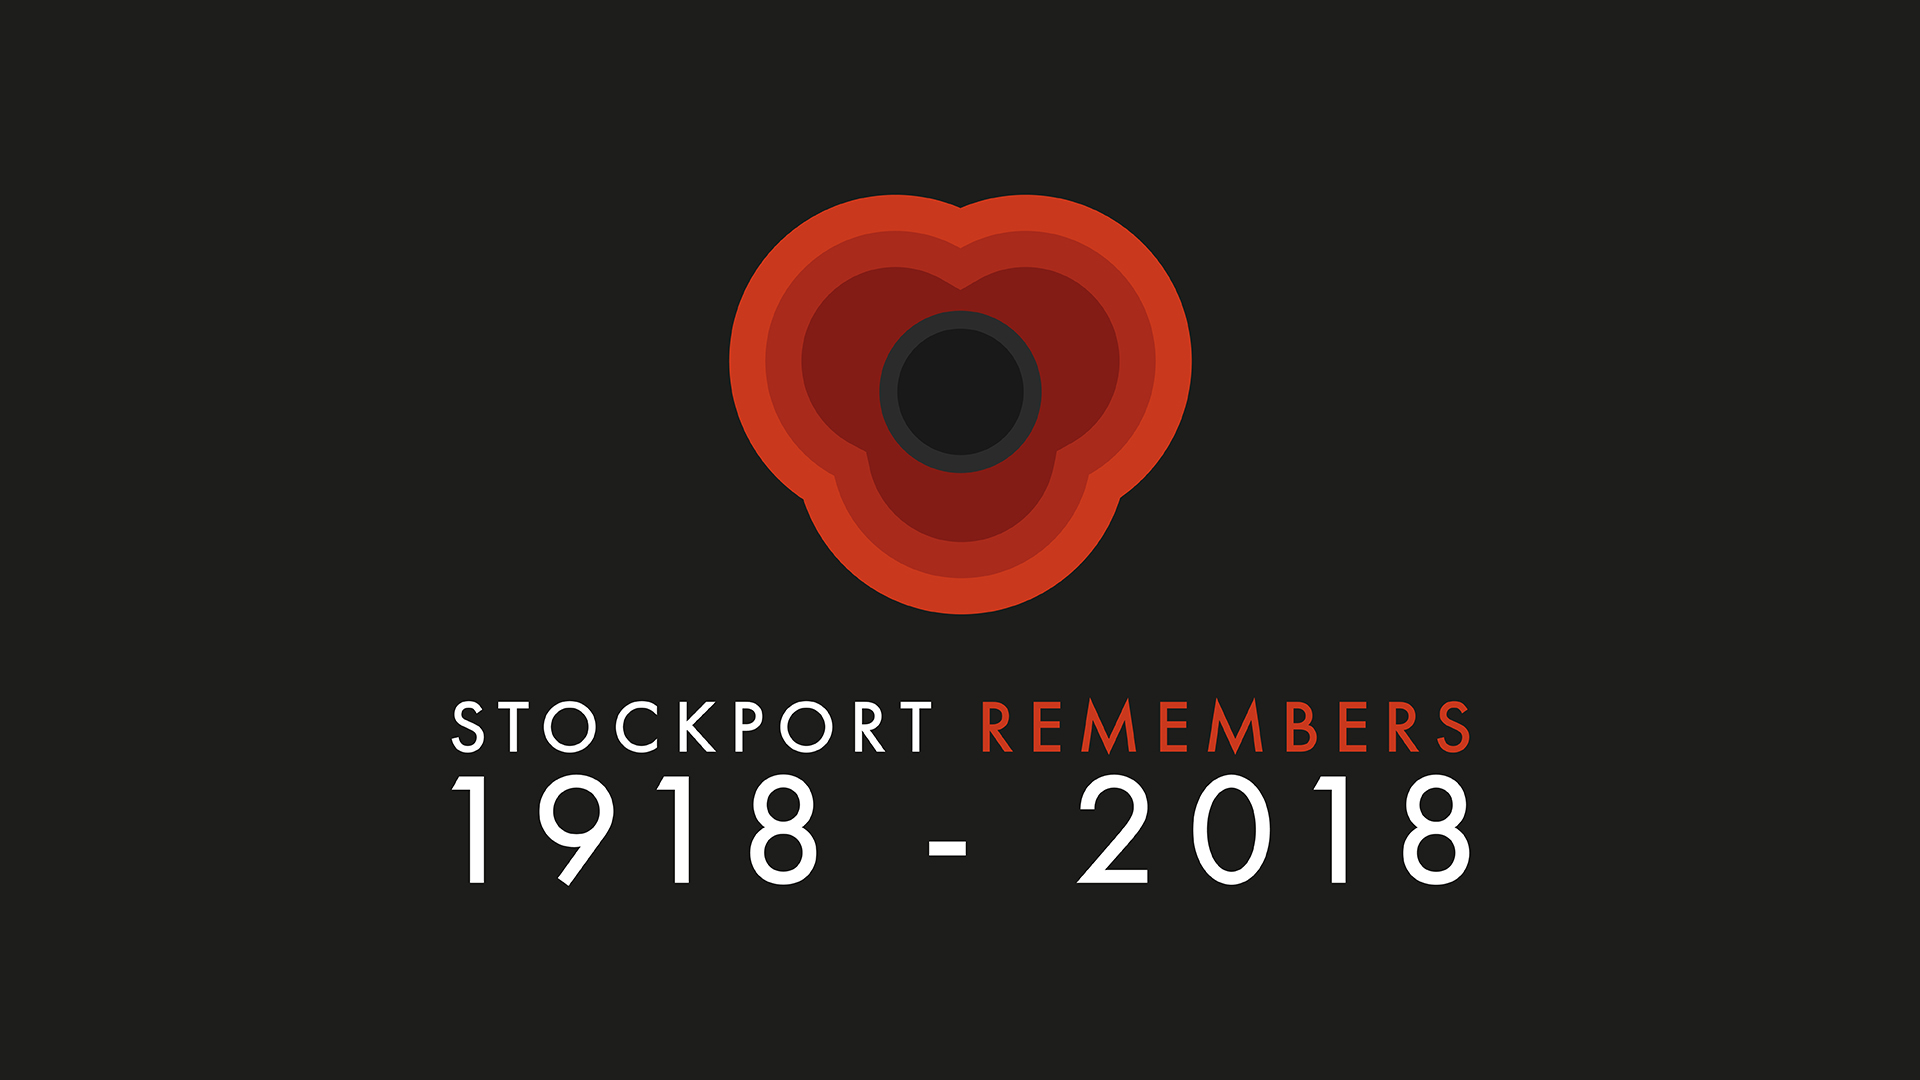 Get involved as 'Stockport Remembers' the end of WW1